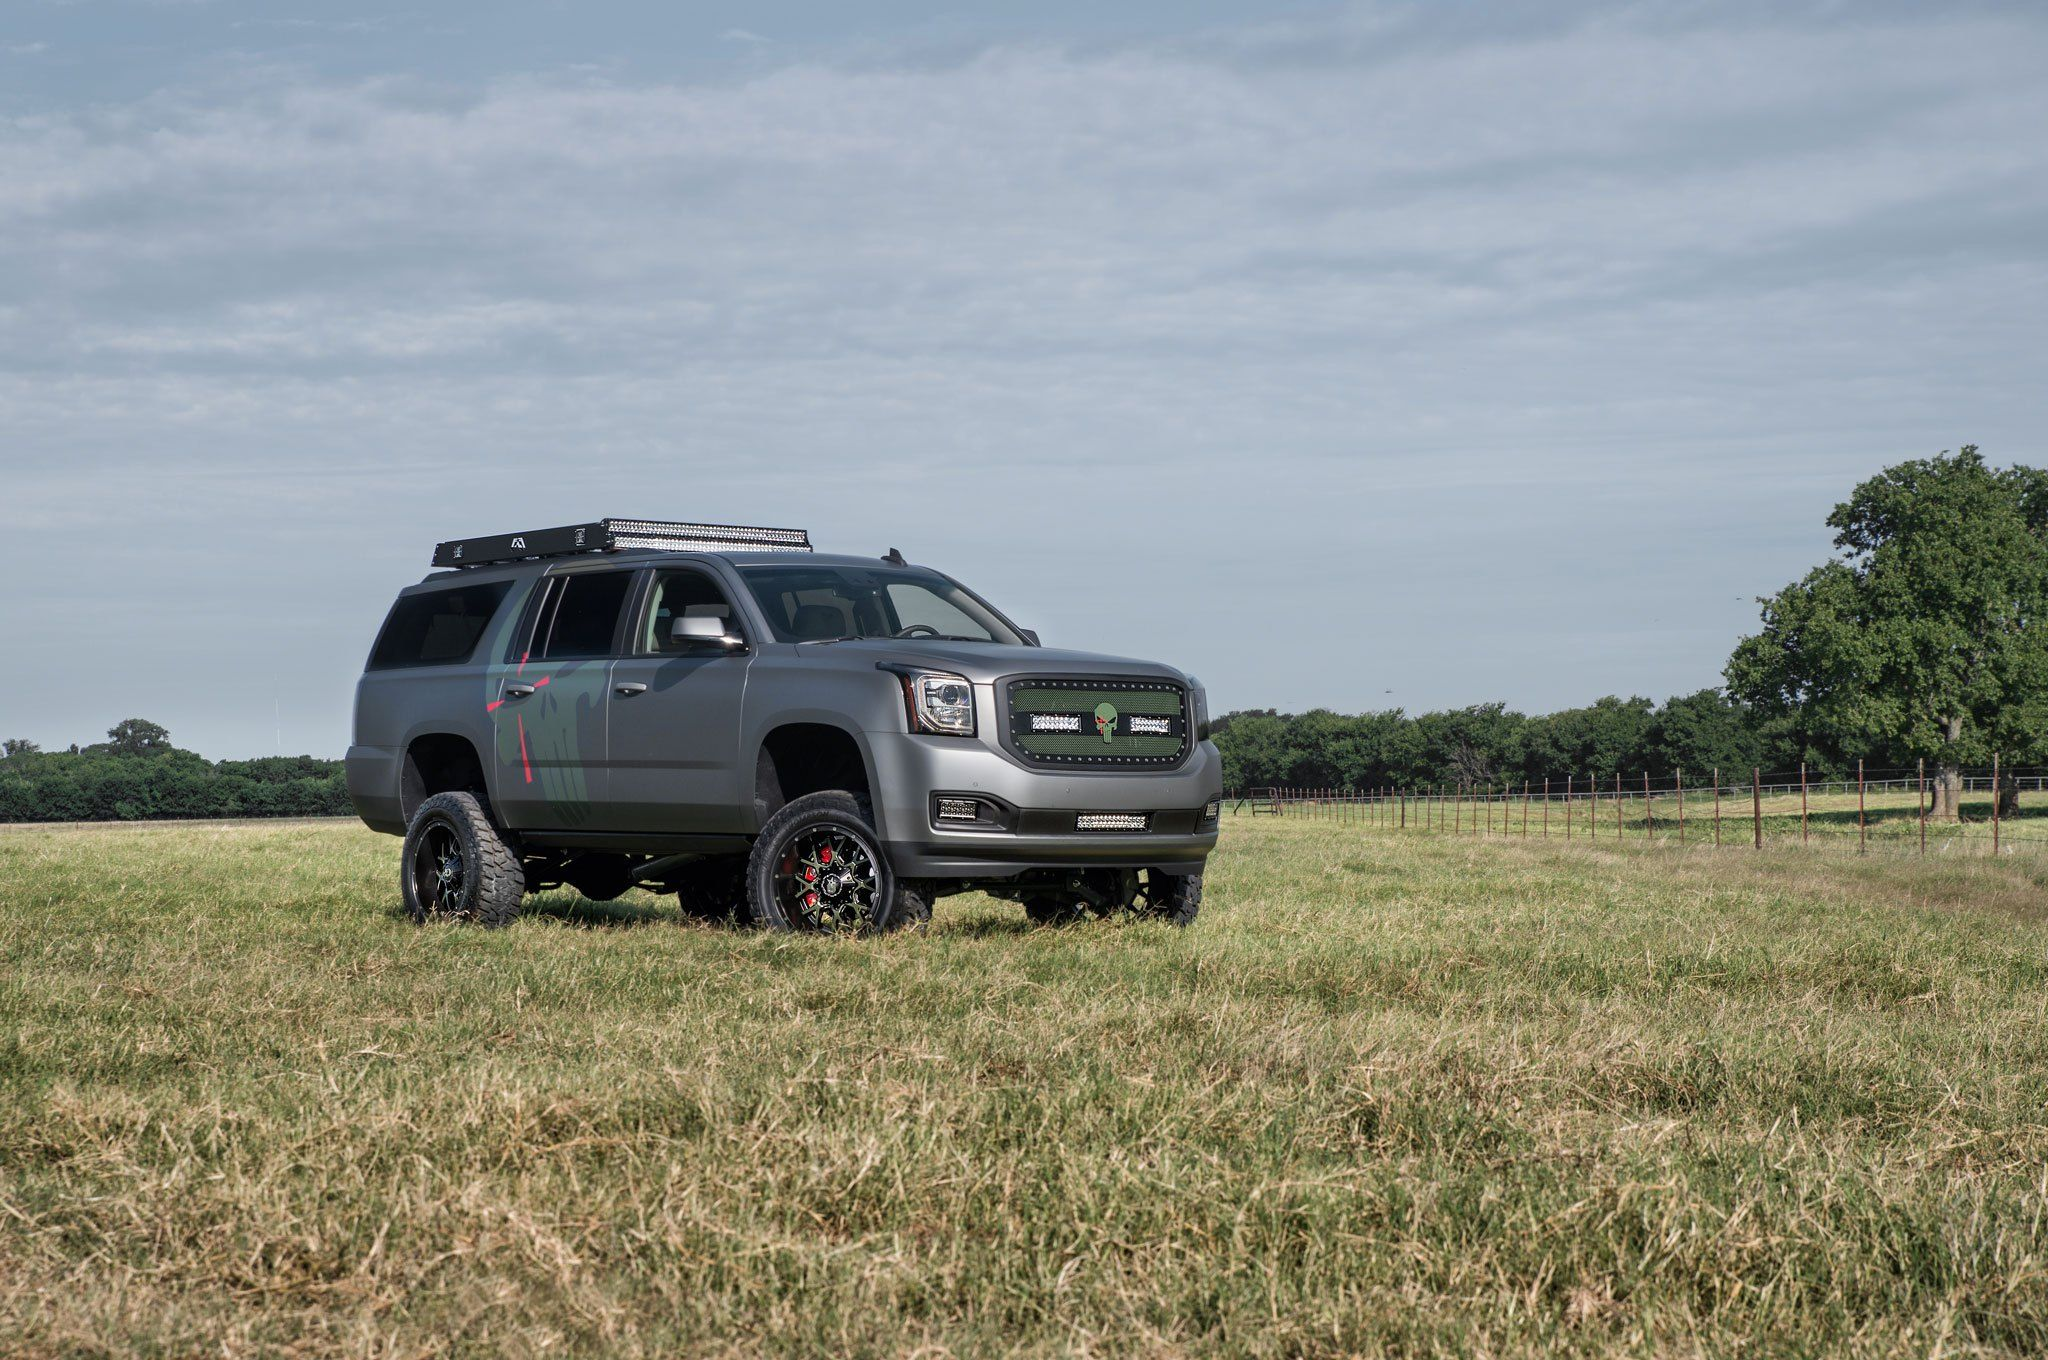 Off Road Modified Gmc Yukon Xl With Mud Tires And Roof Rack Gmc Yukon Gmc Yukon Xl Gmc